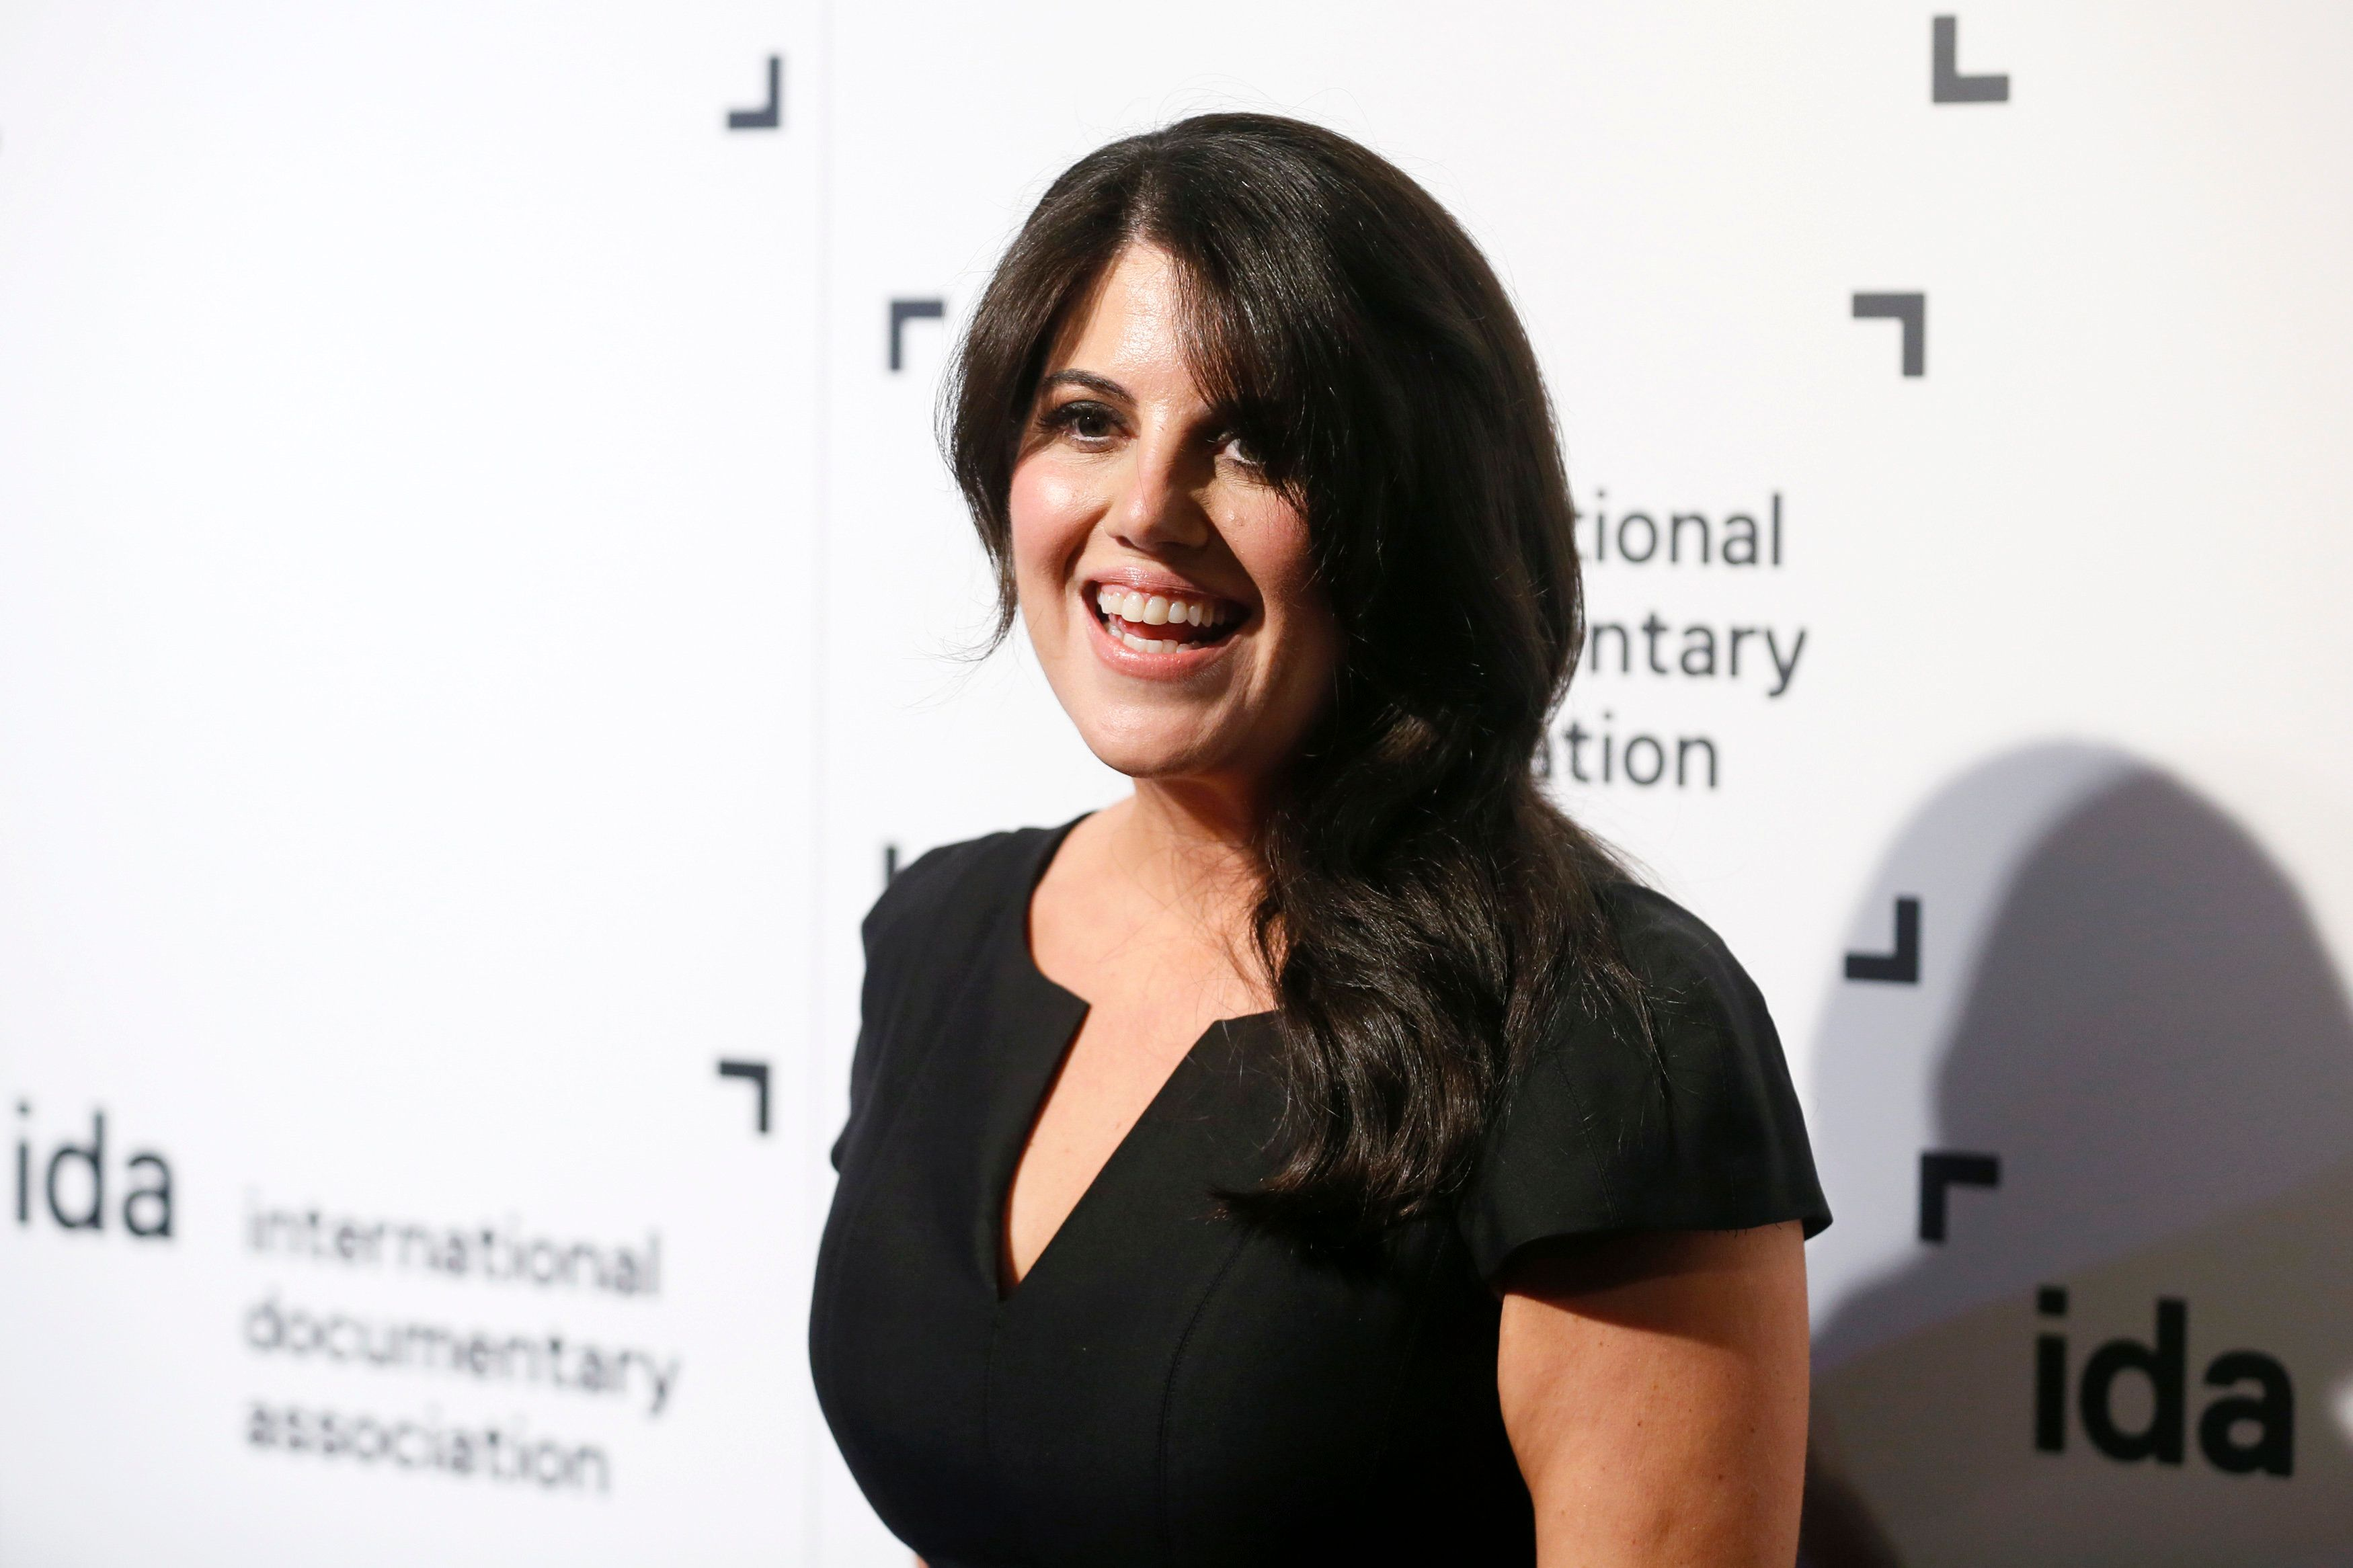 Monica Lewinsky poses at the International Documentary Association's 2014 IDA Documentary Awards in Los Angeles, December 5, 2014.   REUTERS/Danny Moloshok   (UNITED STATES - Tags: ENTERTAINMENT)